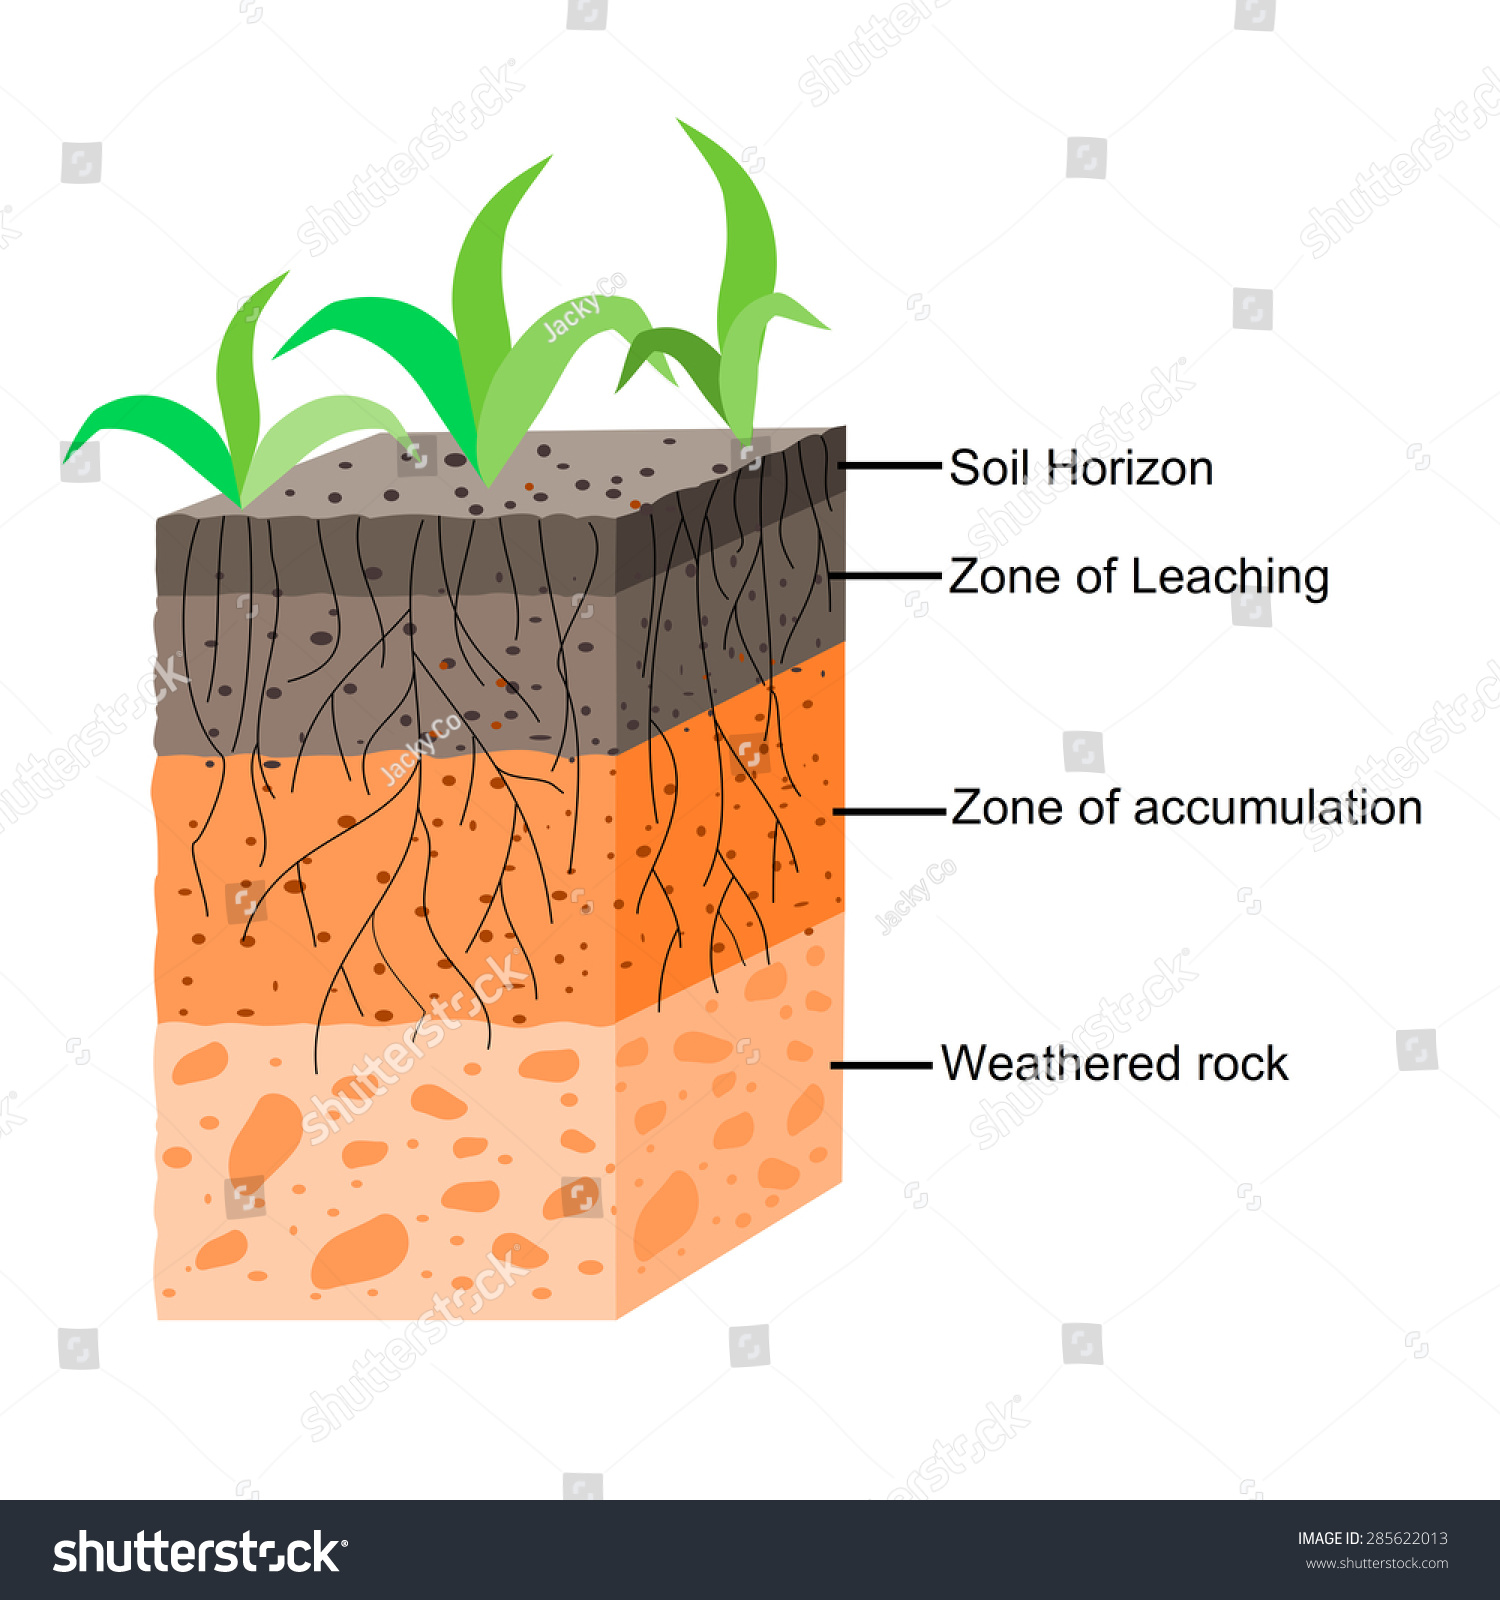 soil formation soil horizons stock vector 285622013 ... diagram of anatomy of lungs